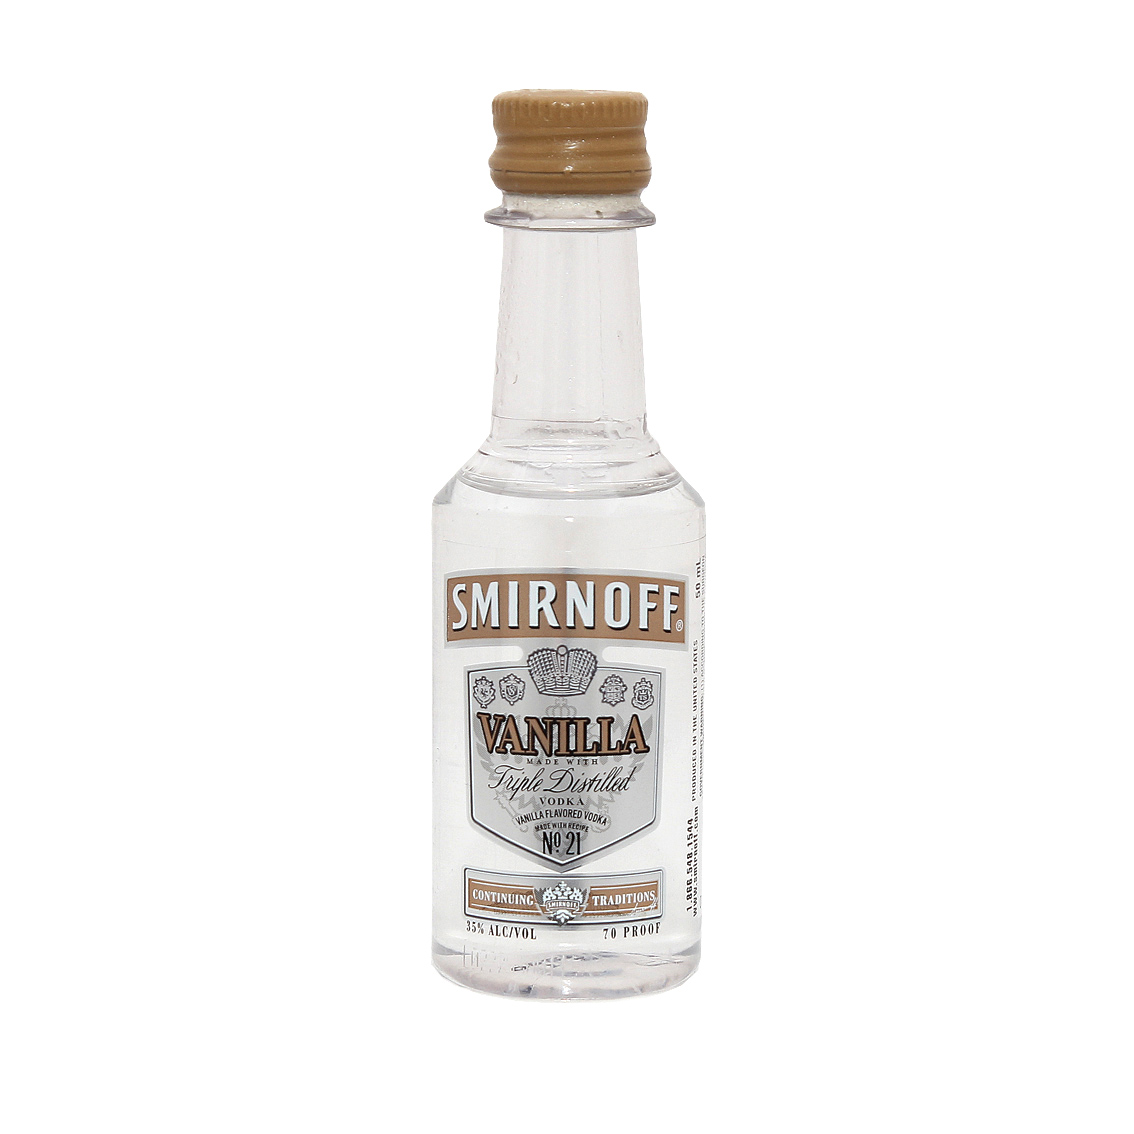 VODKA-SMIRNOFF-continuing-traditions-VANILLA